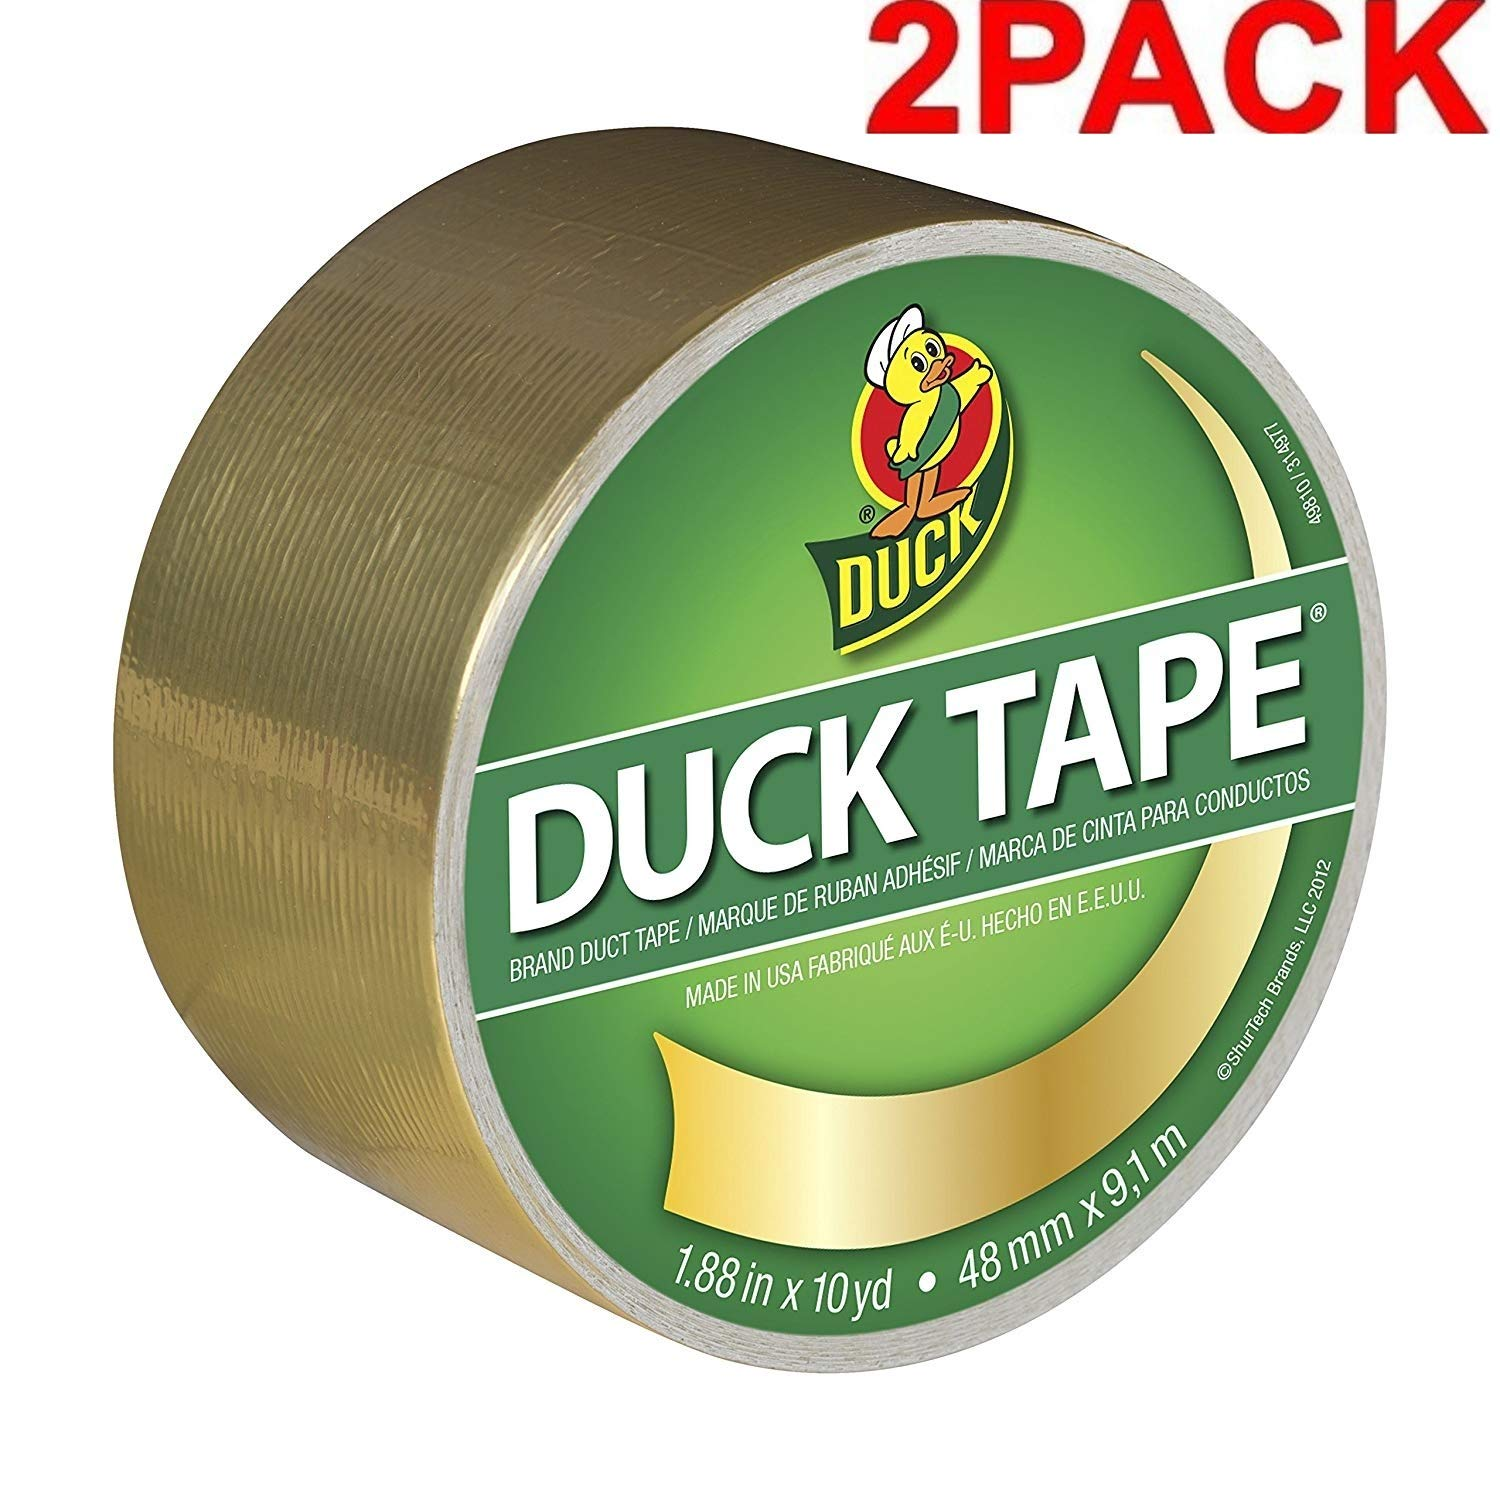 Gold Duck Brand 280748 Metallic Color Duct Tape 2 Pack Single Roll 1.88 Inches x 10 Yards